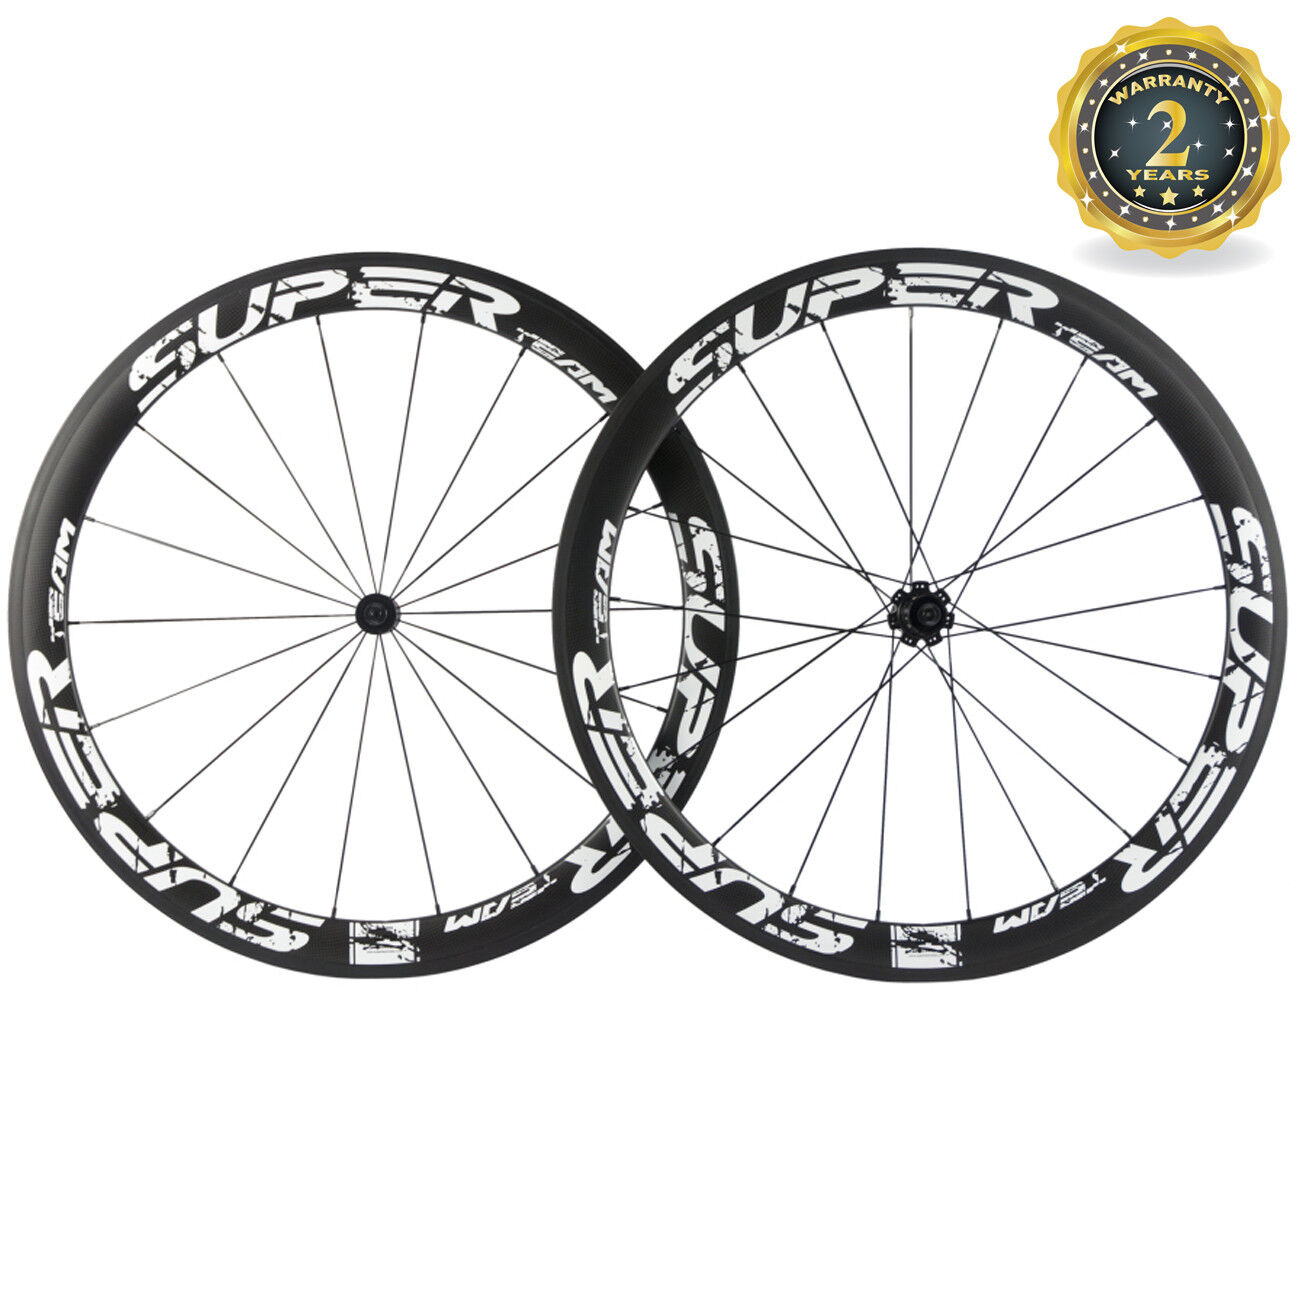 White Superteam  Carbon Wheelset 50mm Clincher Road Bicycler Wheels 700C R7 Hub  we supply the best